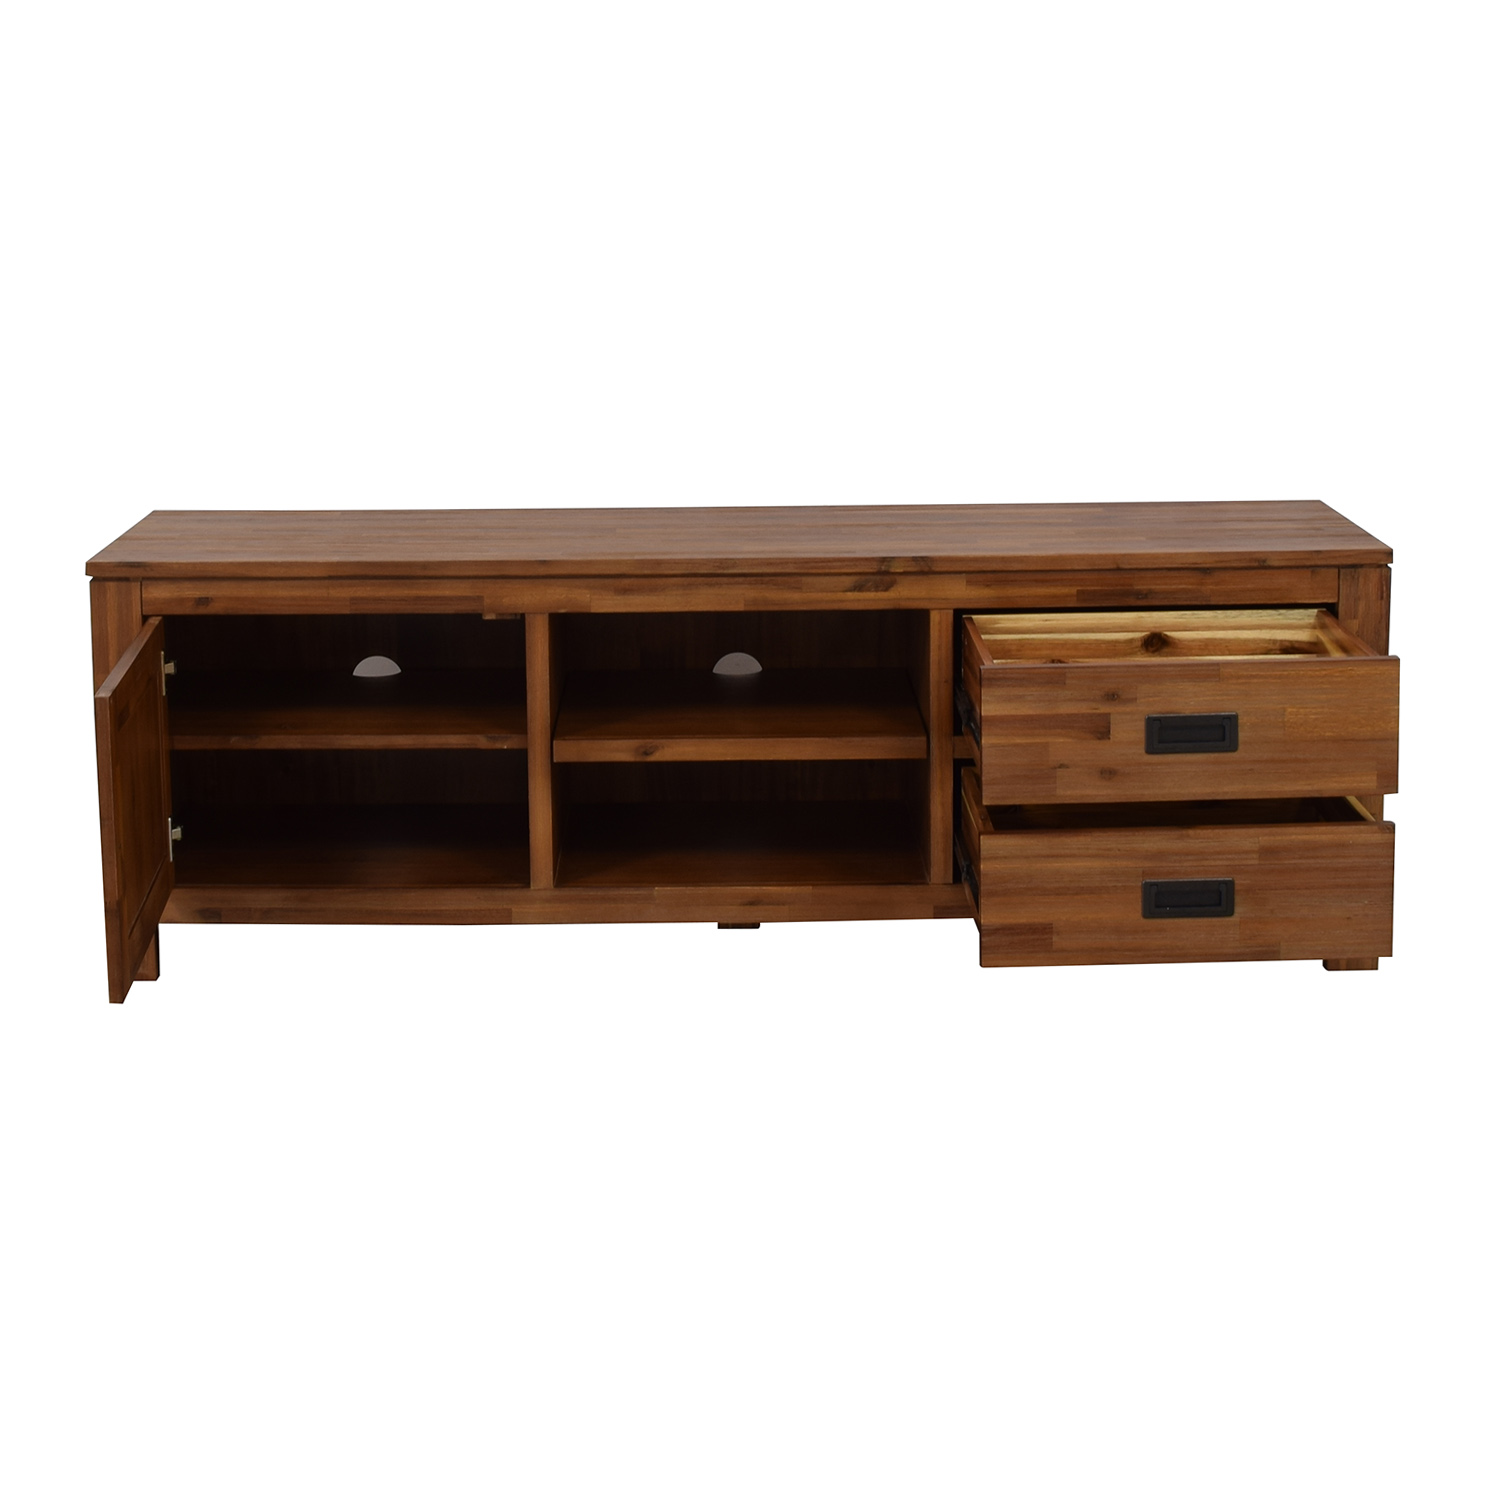 Macy's Macy's Cresent Fine Furniture Wooden TV Stand nyc